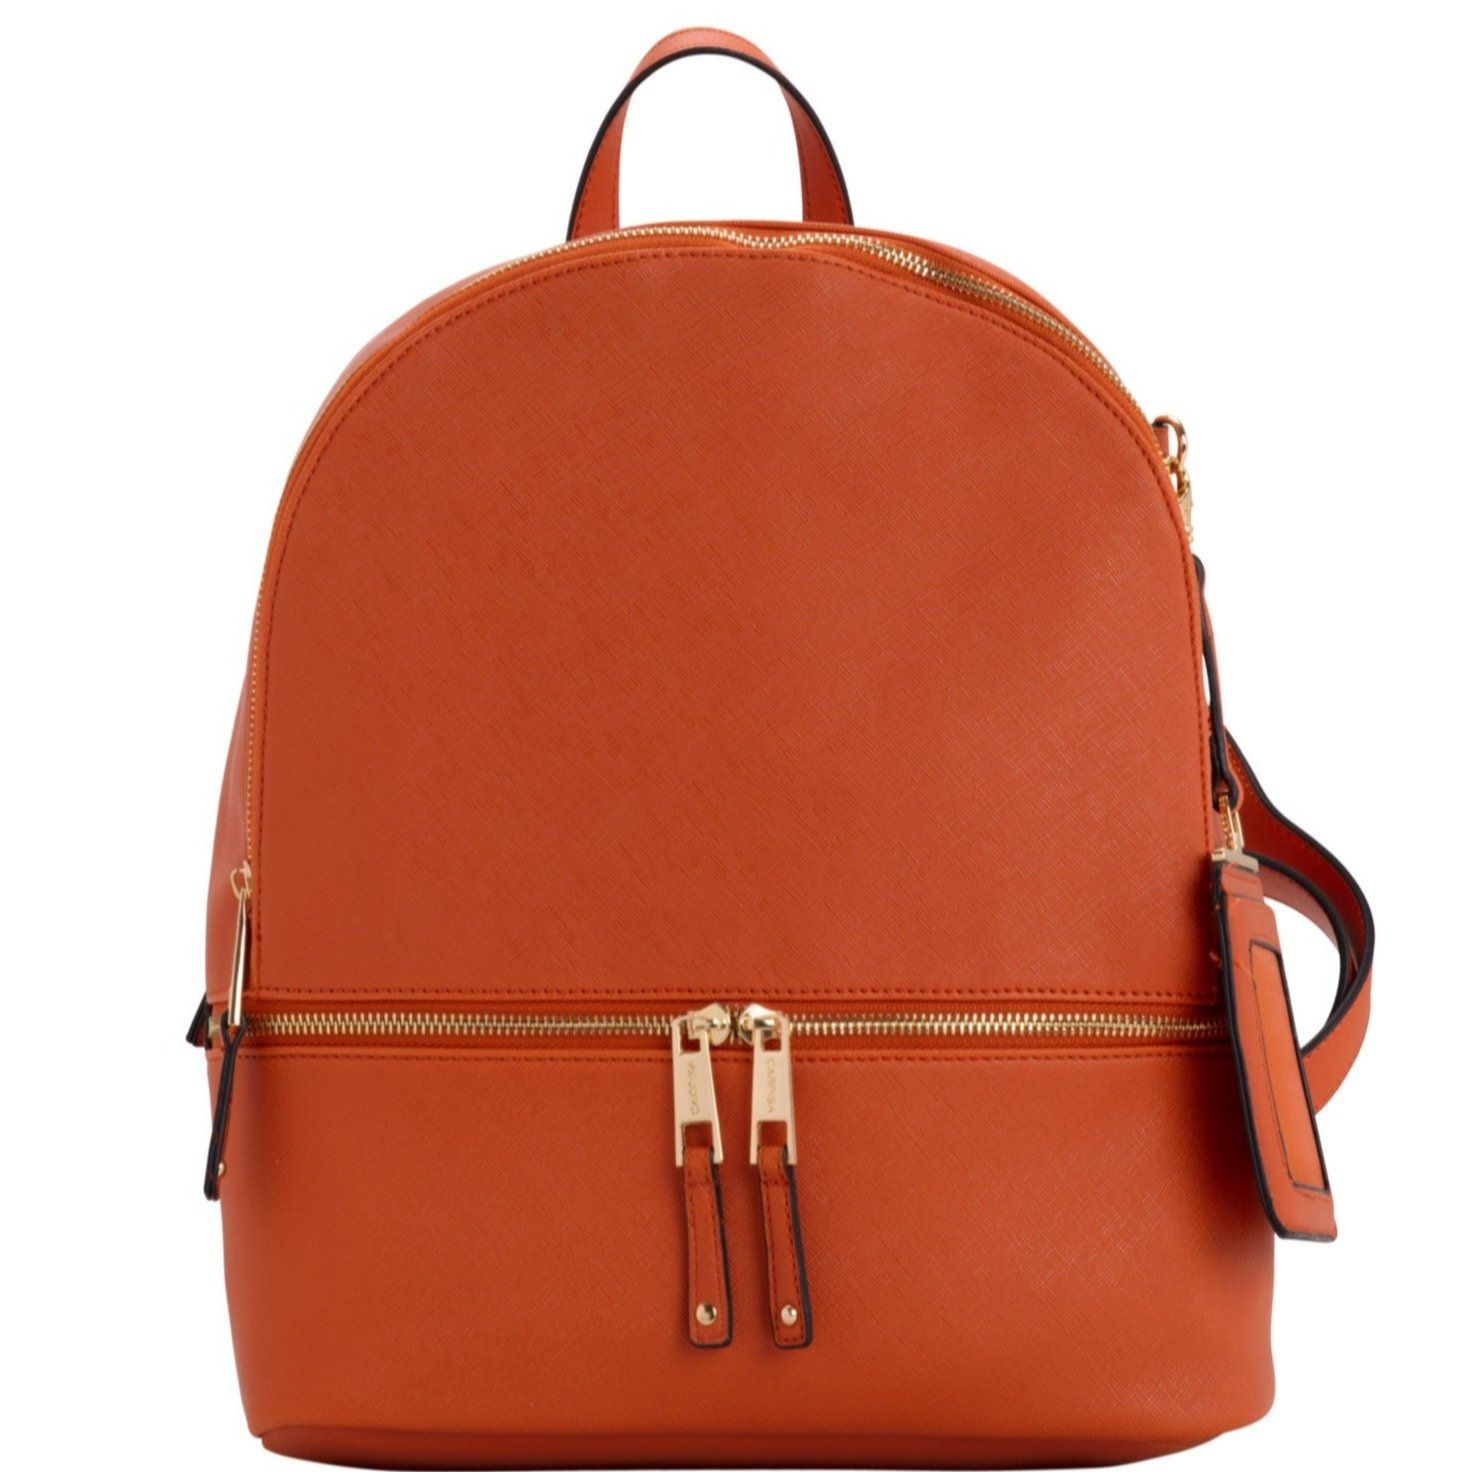 Carpisa-Giselle Women's Backpack - Lemon and Twig